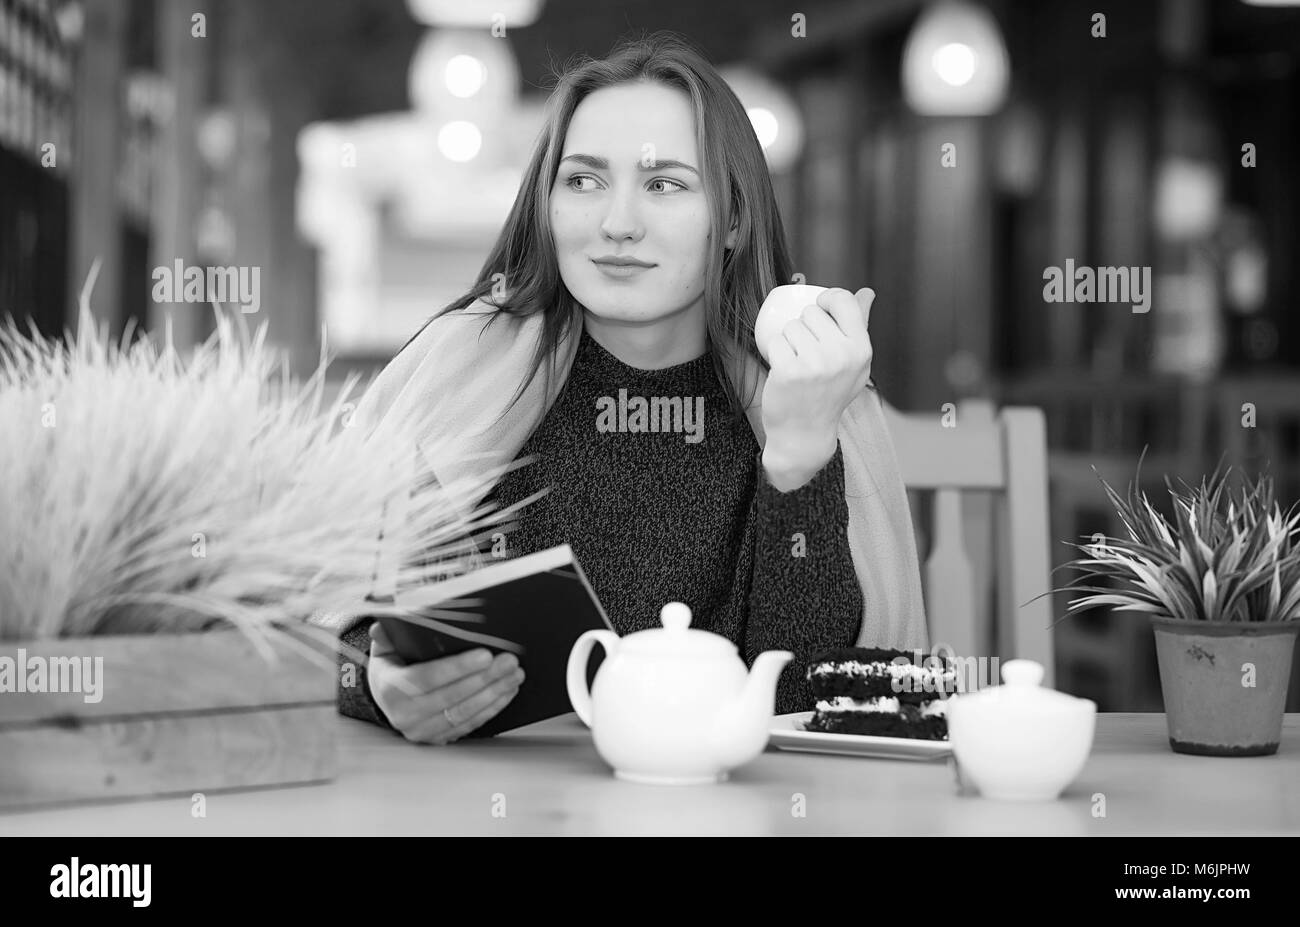 Girl in a cafe sitting and drinking tea - Stock Image